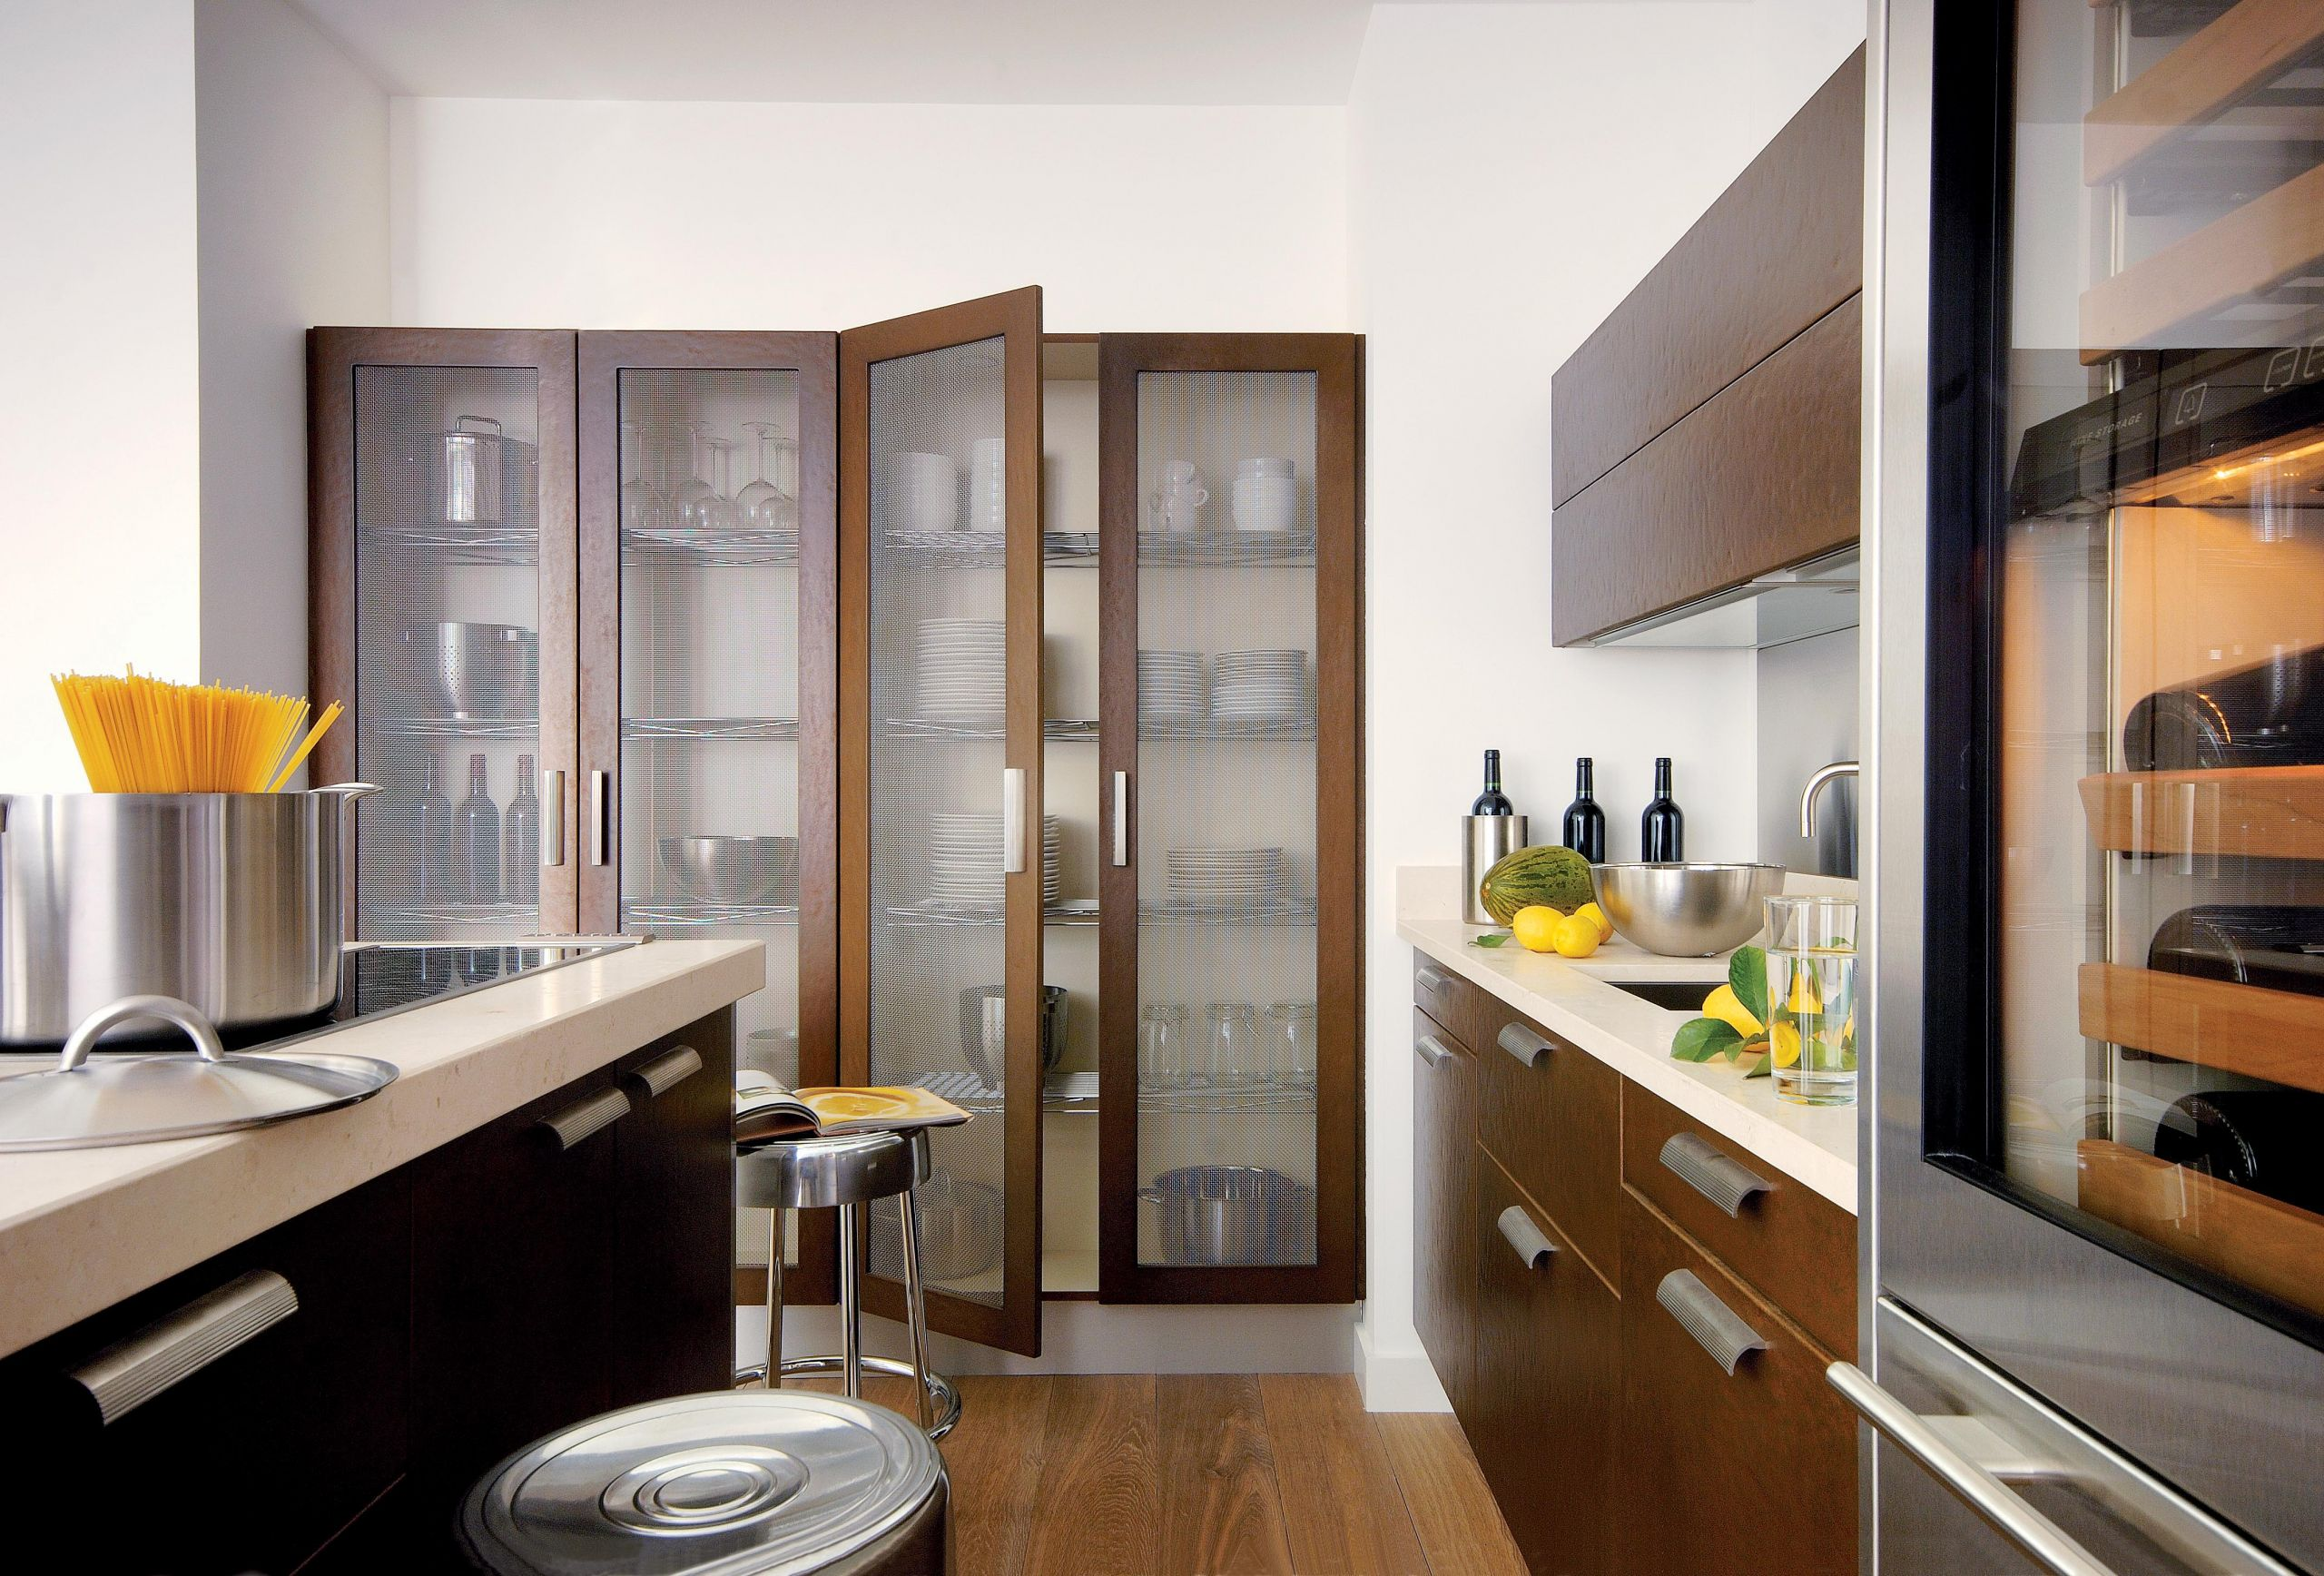 A bold kitchen with cool metallic elements and robust textures